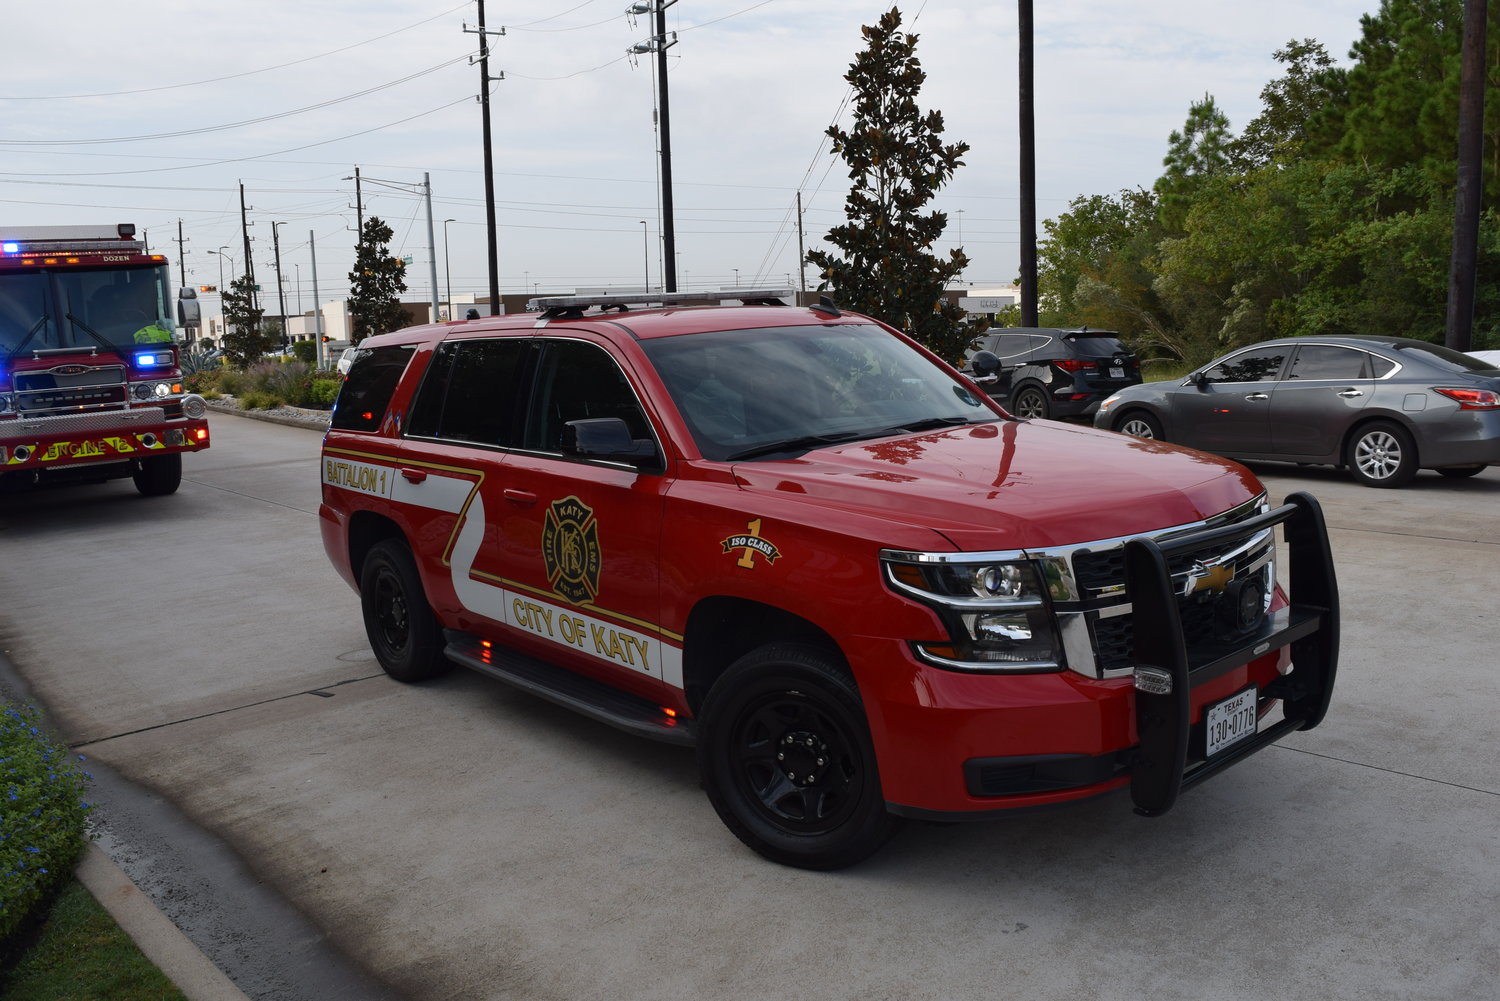 The city of Katy Fire Department was one of several departments to assist Harris County ESD 48 at the scene.